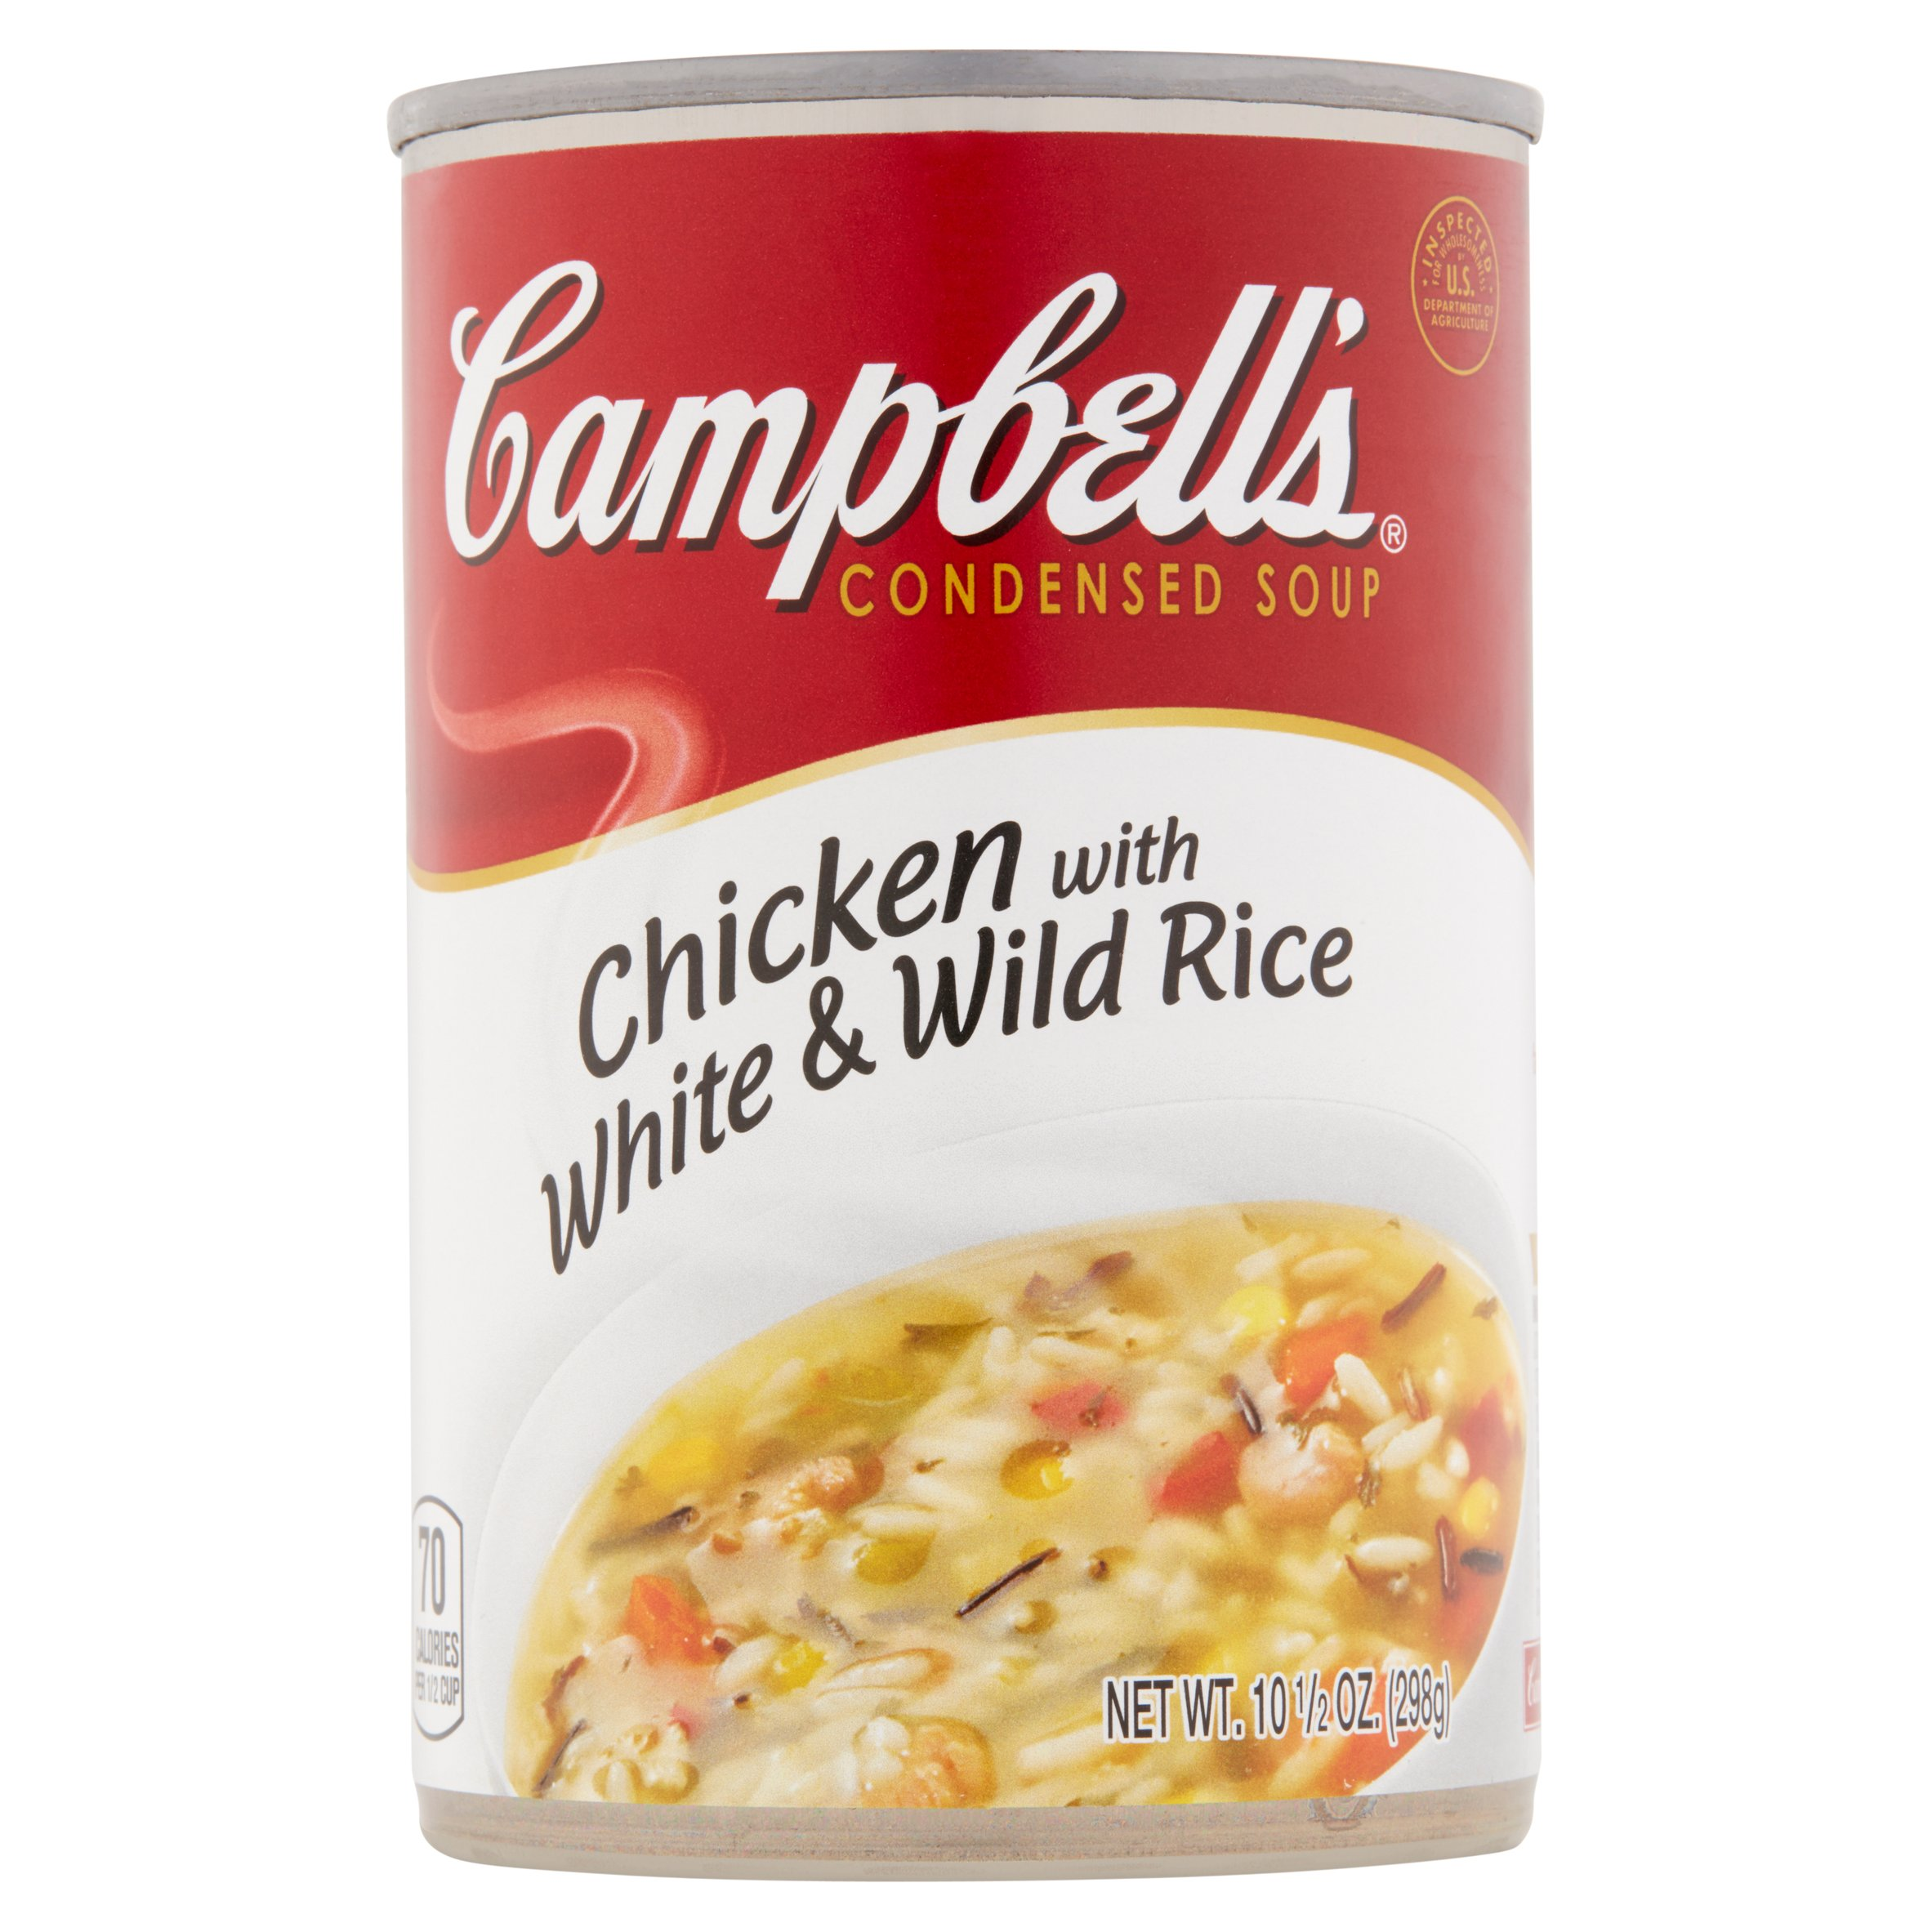 Campbell's Chicken With White & Wild Rice Condensed Soup